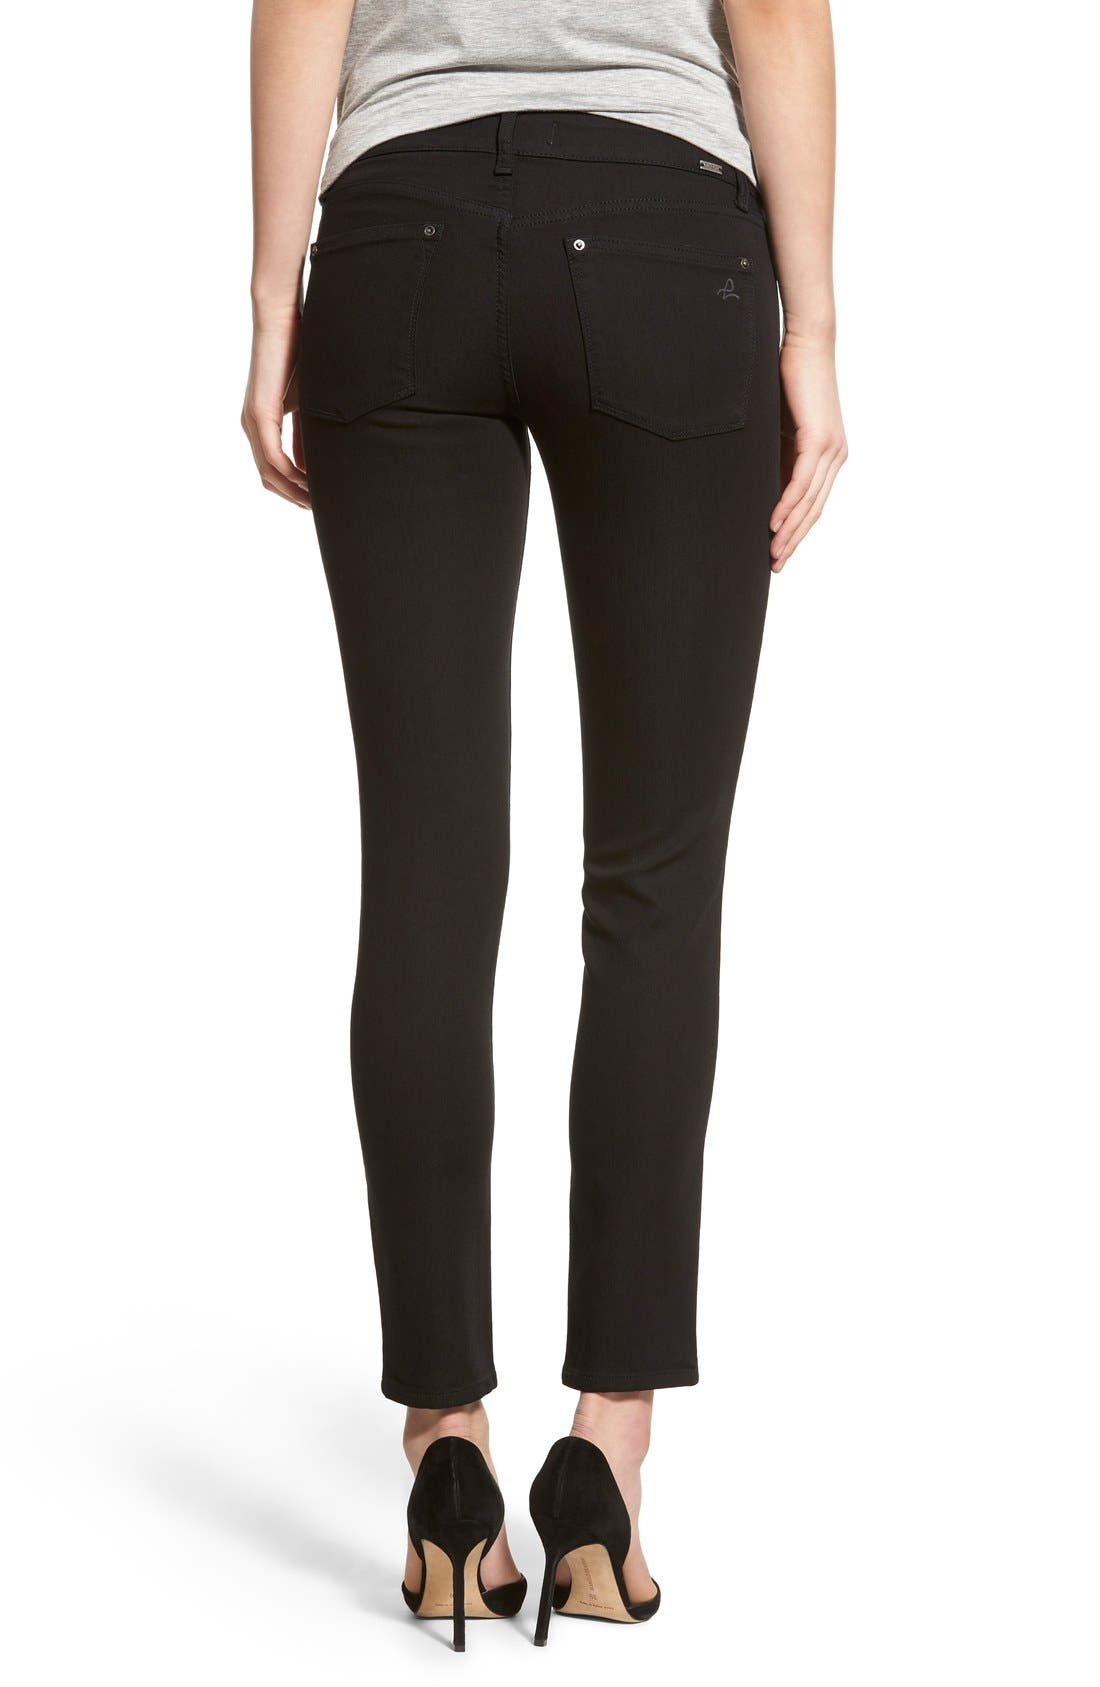 Alternate Image 2  - DL1961 'Emma' Power Legging Jeans (Riker)